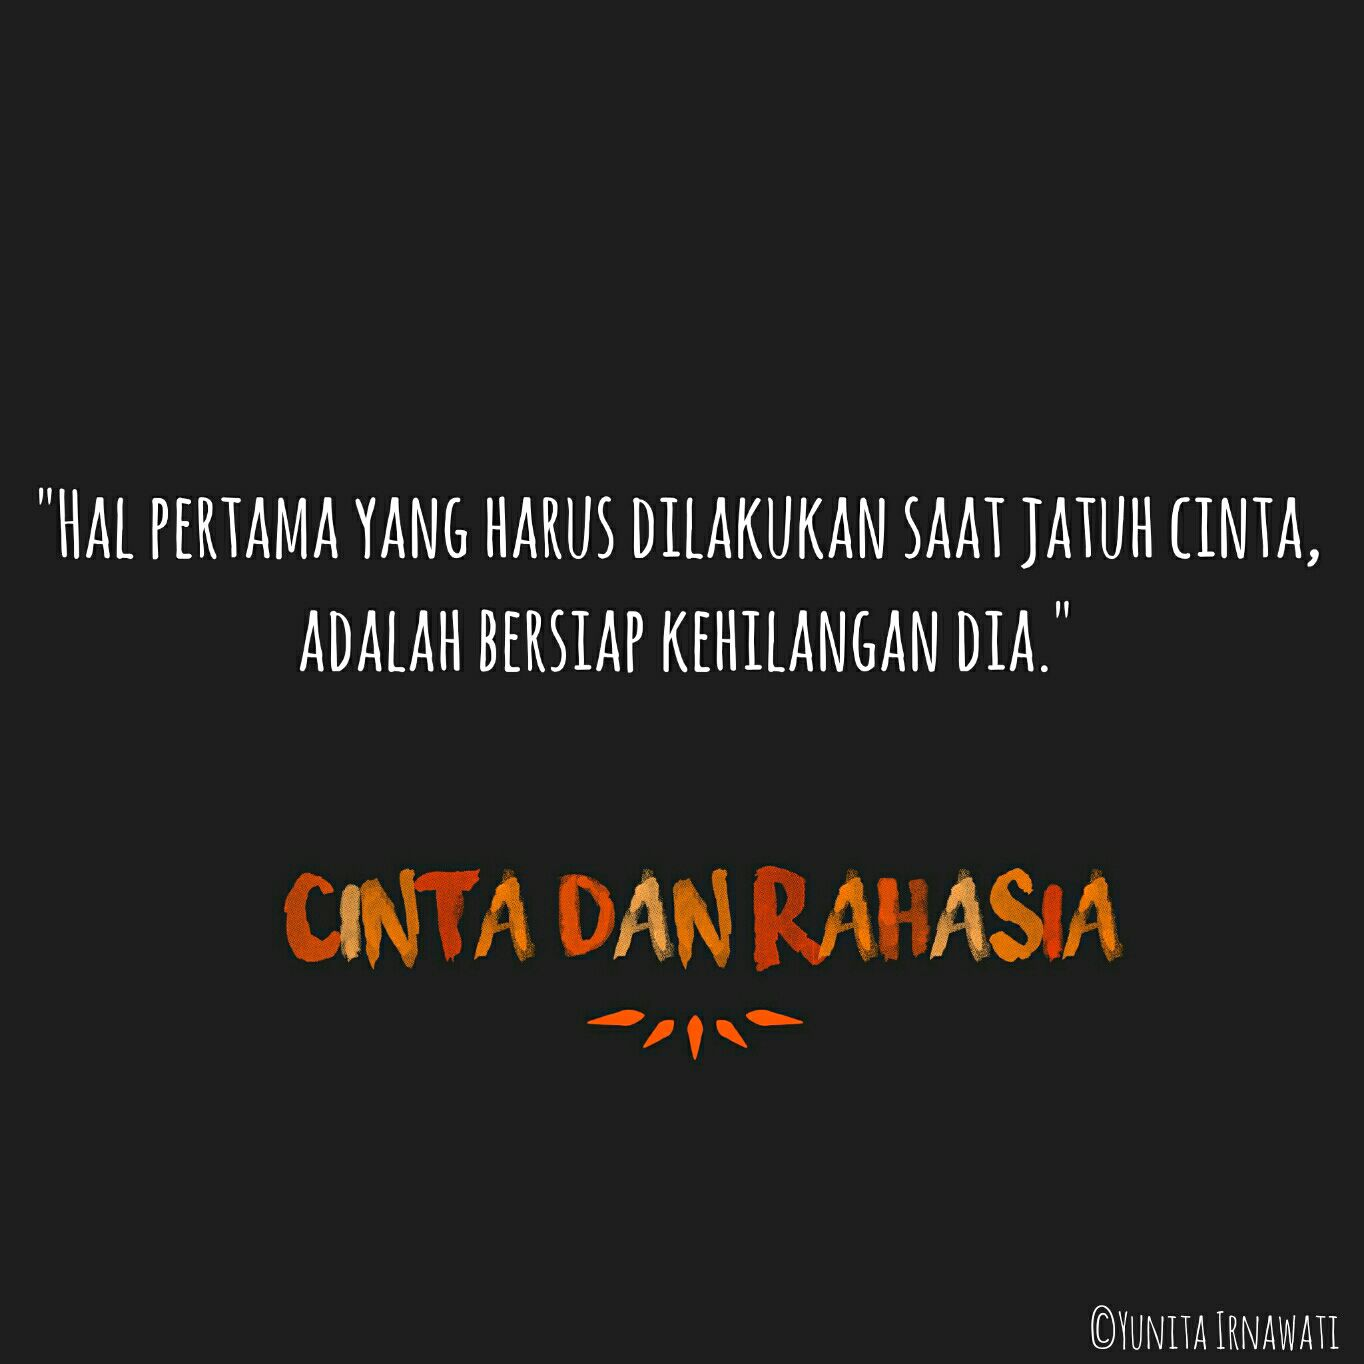 only quotes completed✓ cinta dan rahasia wattpad